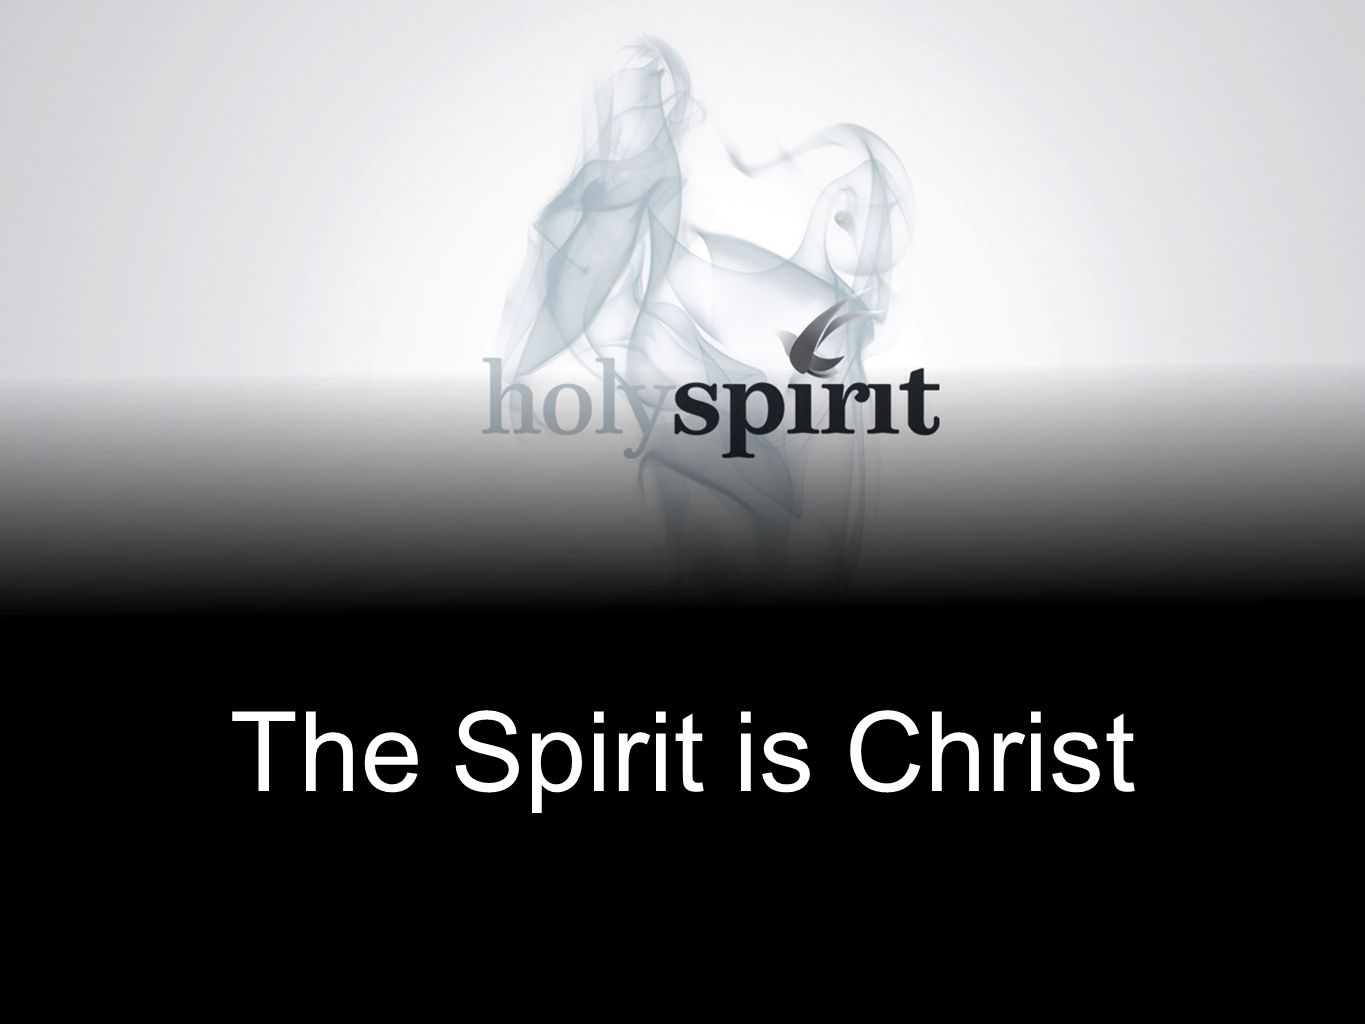 The Spirit is Christ